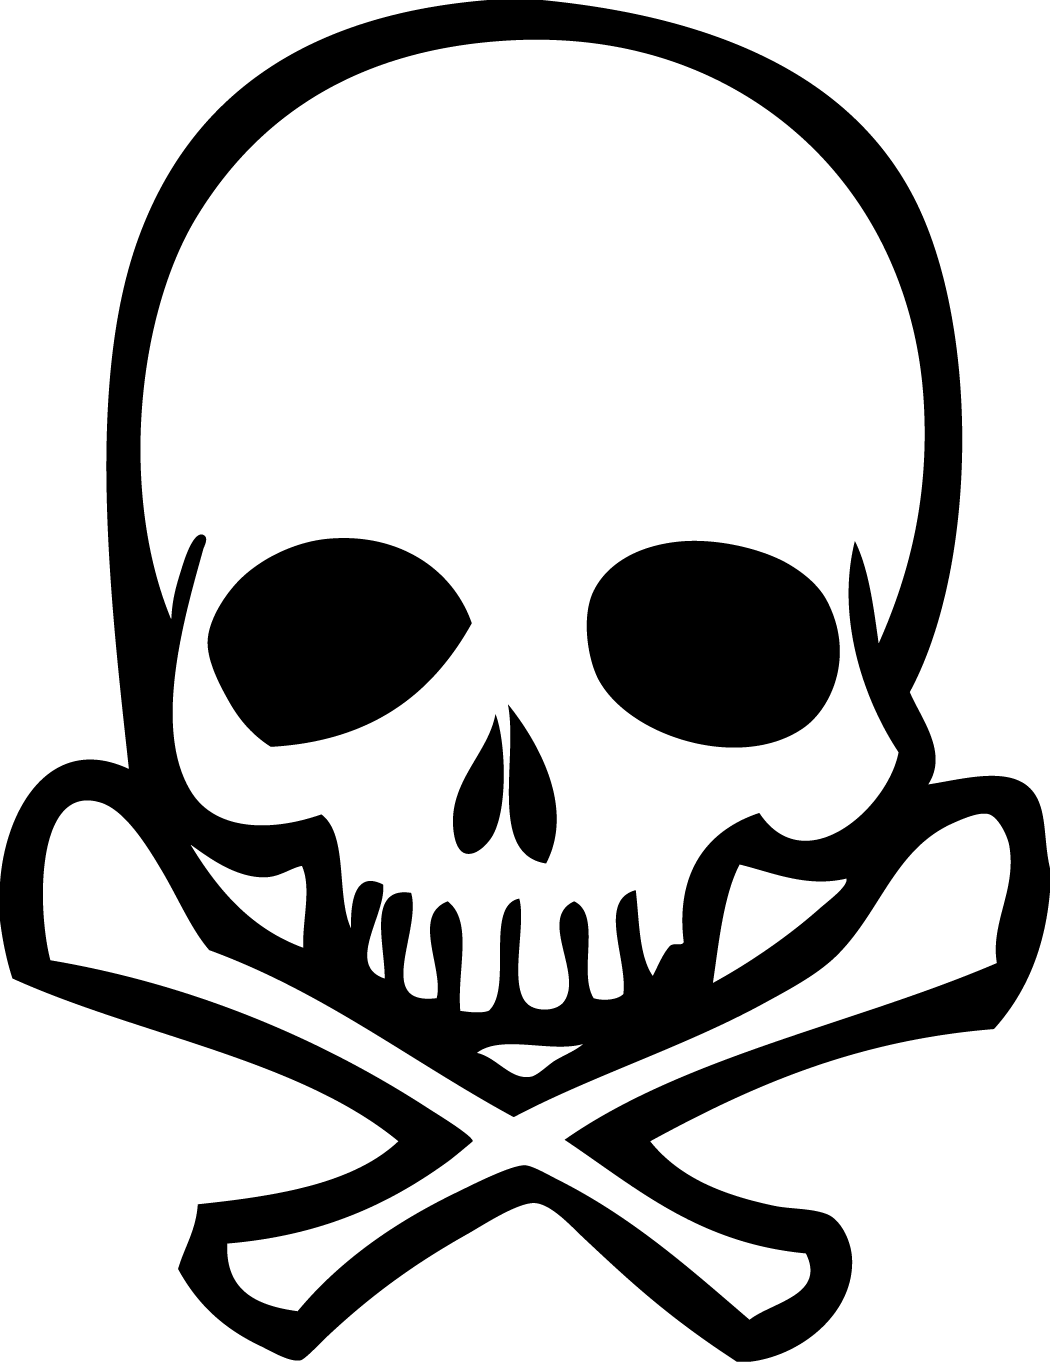 Skull And Crossbones Pictures For Kids - ClipArt Best